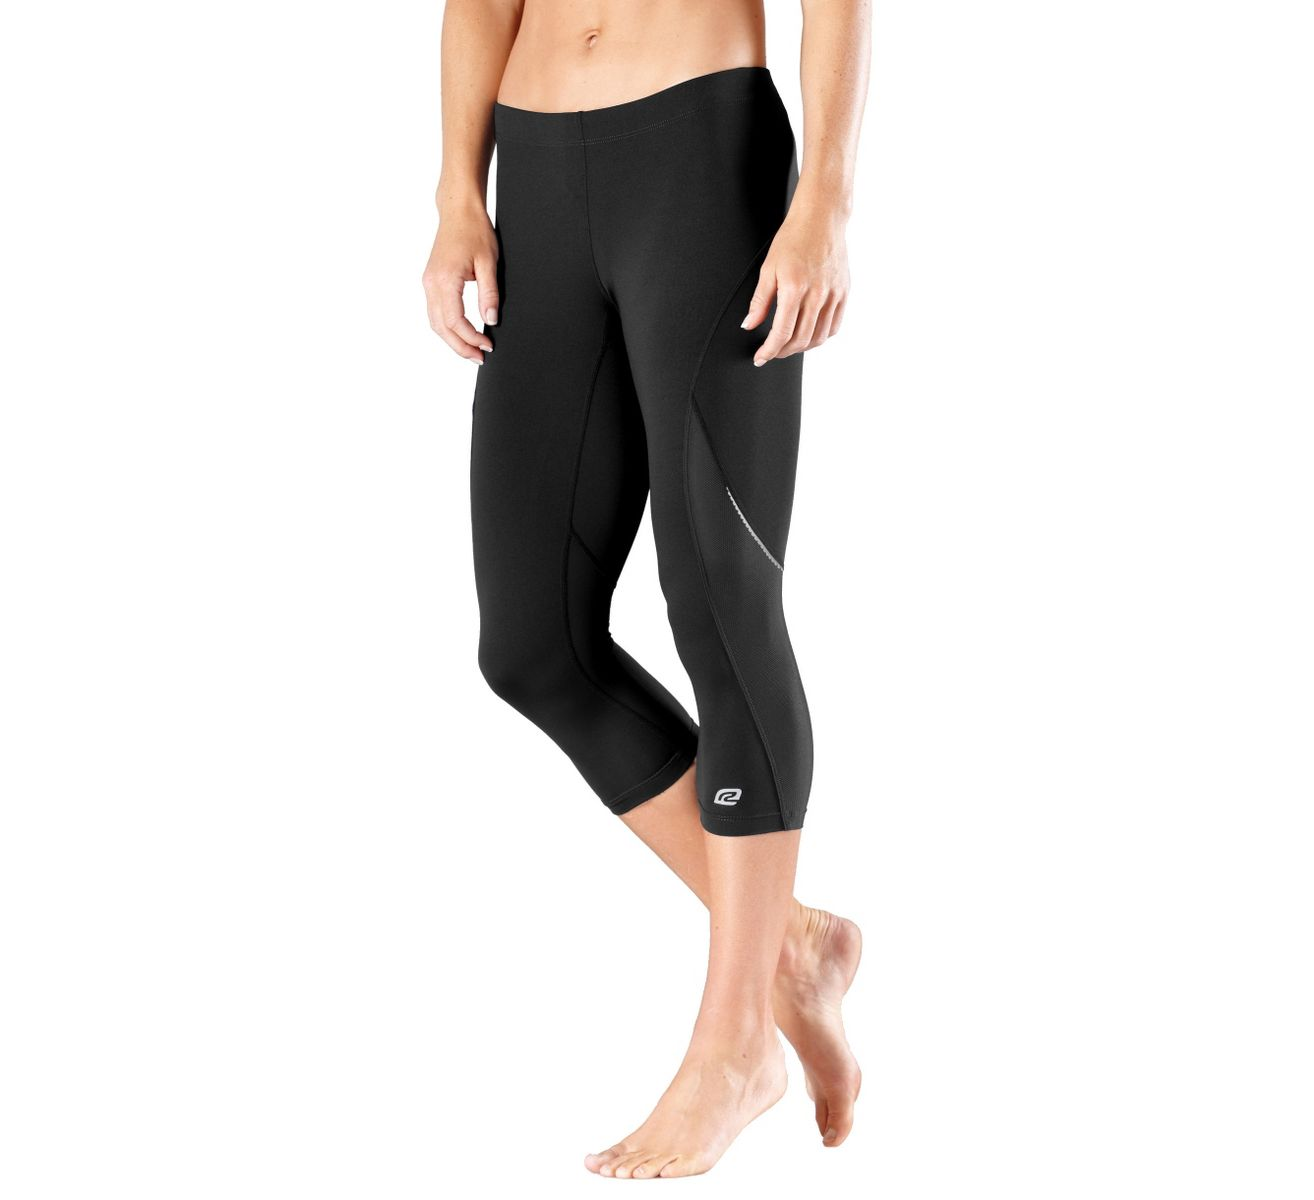 See all results for running capris womens. Oalka. Women's Yoga Capris Power Flex Running Pants Workout Leggings. from $ 16 99 Prime. out of 5 stars 1, Imido. Women's Yoga Capri Pants Sport Tights Workout Running Mesh Leggings with Side Pocket. from $ 10 99 Prime. out of 5 stars adidas. Women's Techfit Capris.